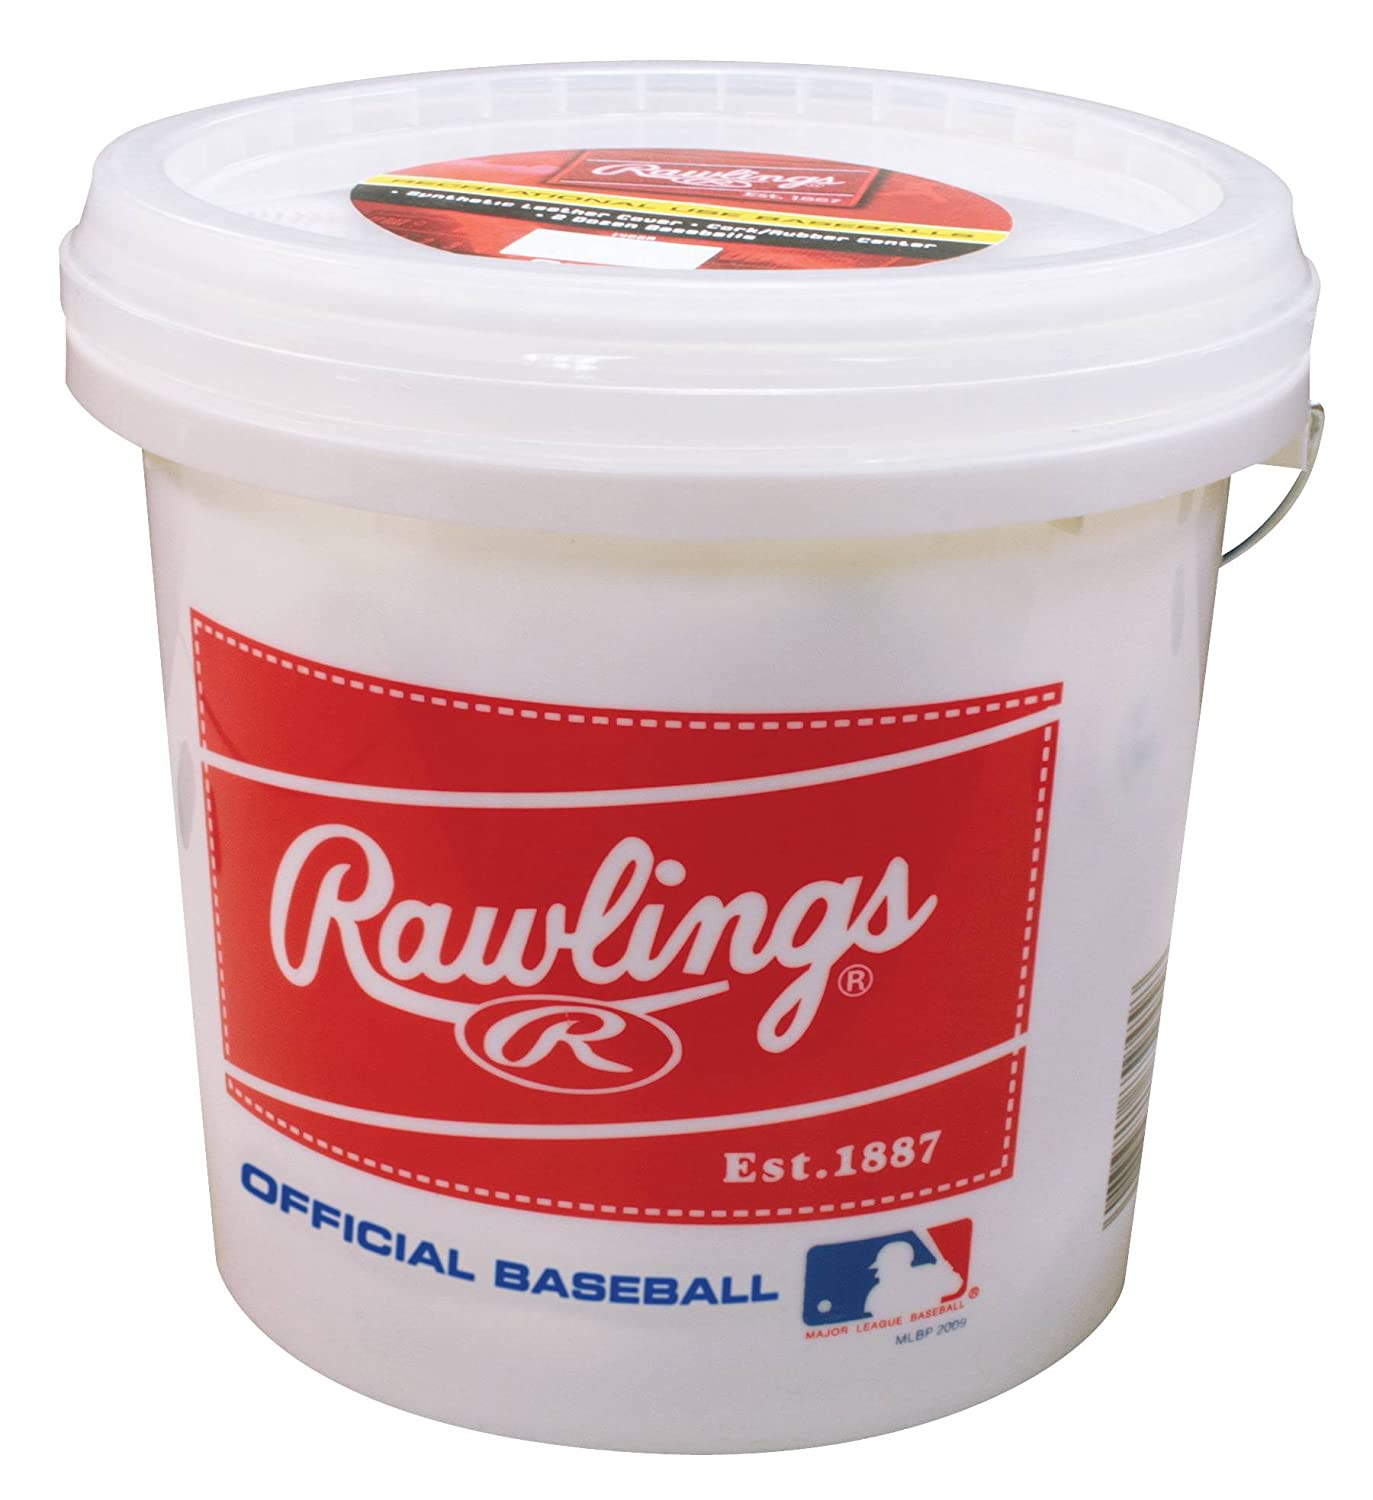 Rawlings Offizielle League Recreational Eimer, Eimer mit 24  Basebä lle, olb3buck24 AMAOLB3BUCK24